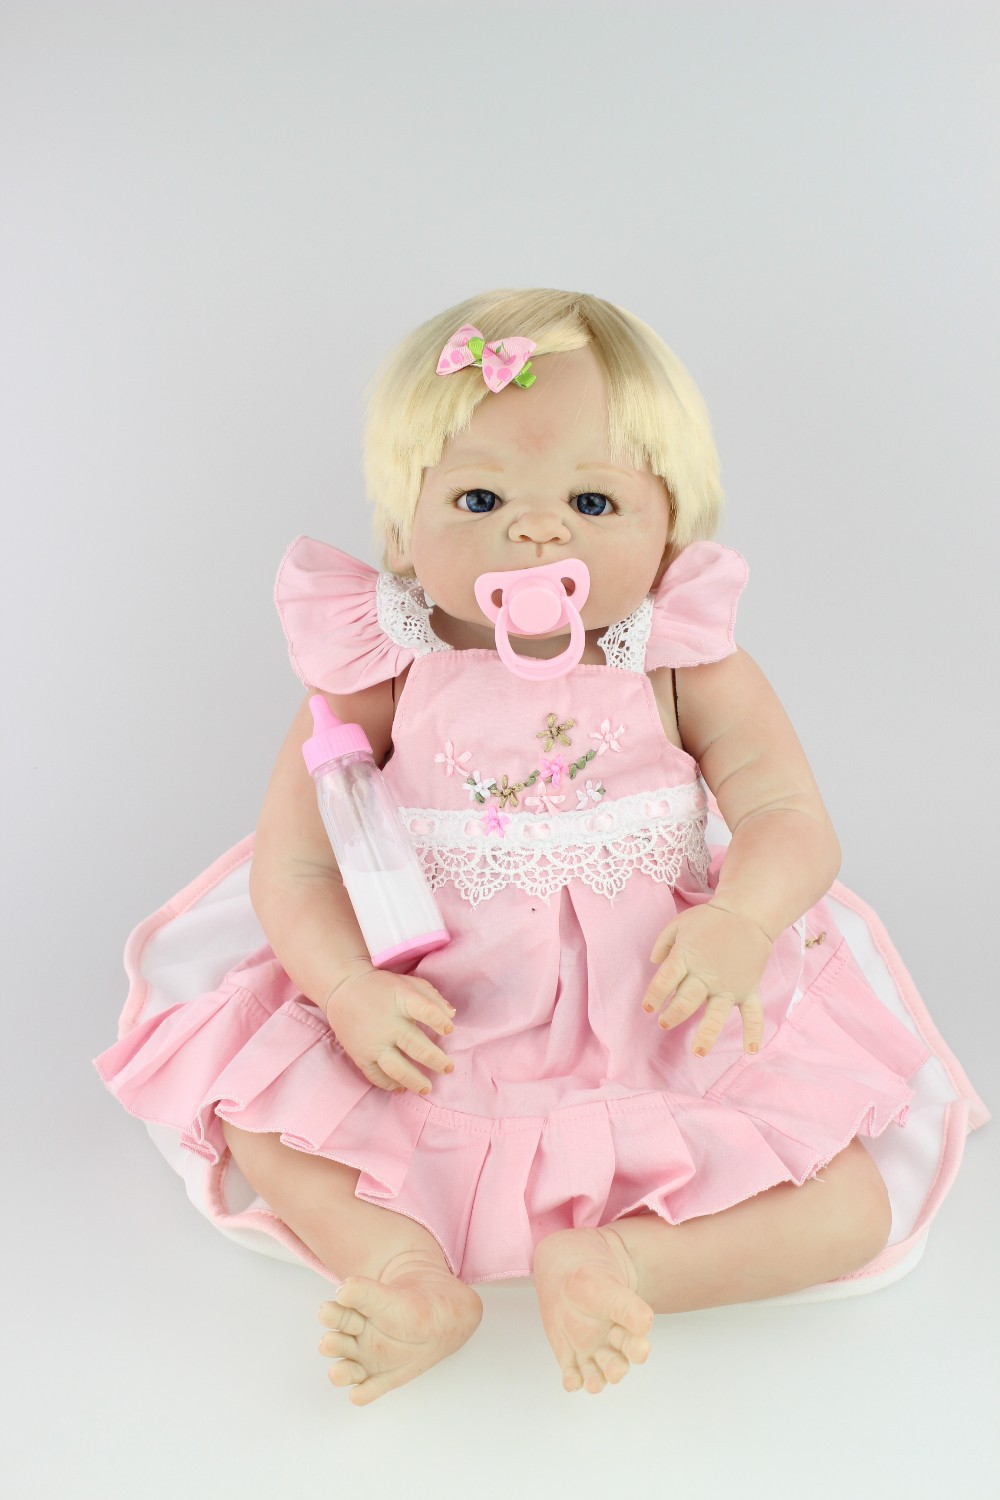 NPKCOLLECTION lifelike full vinyl reborn baby doll popular gift for children on Christmas and Birthday bonecas reborn